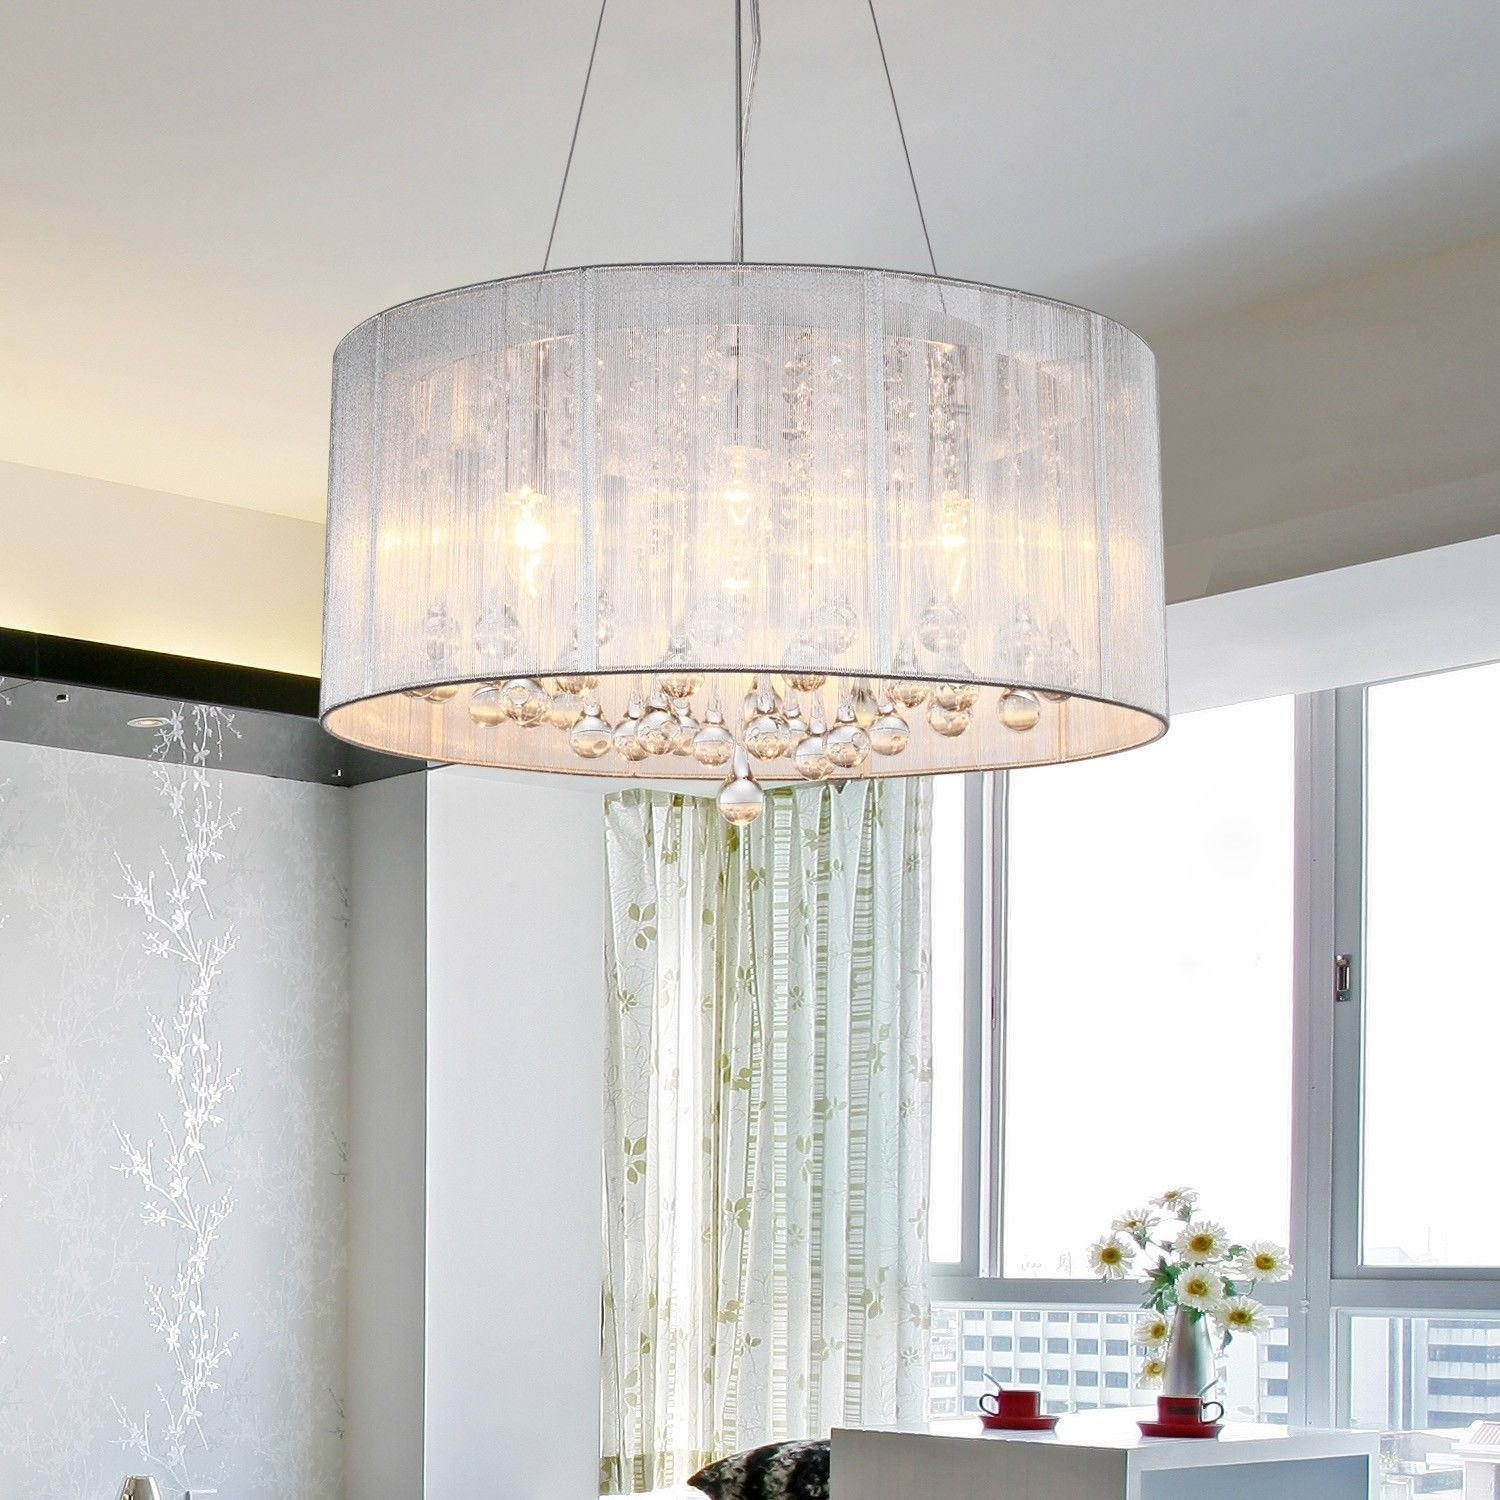 Very Awesome Lamp Shade Chandelier Best Home Decor Inspirations Intended For Chandelier Light Shades (Image 23 of 25)